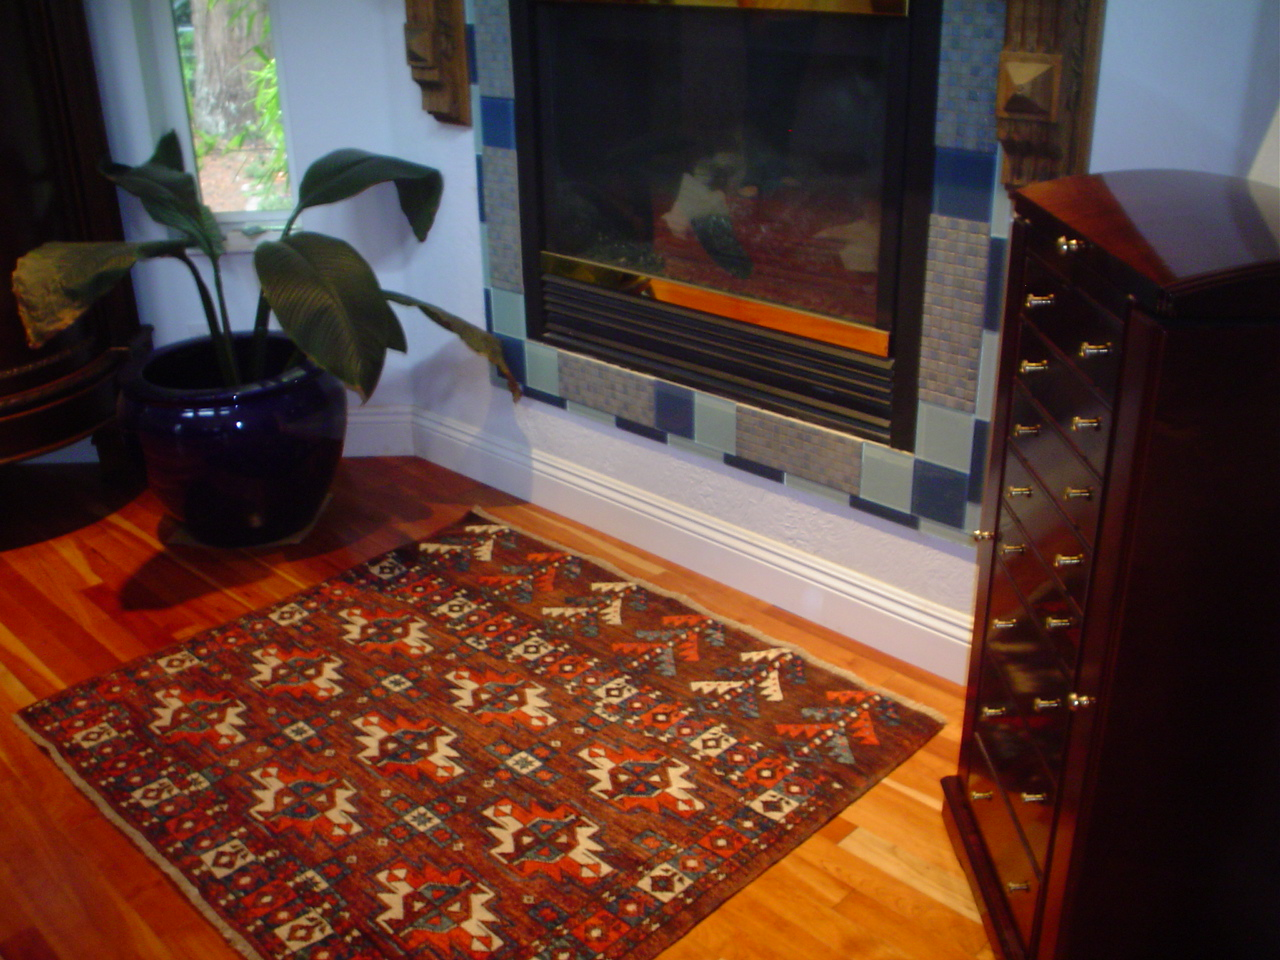 Small Turkoman rug in front of the fireplace.